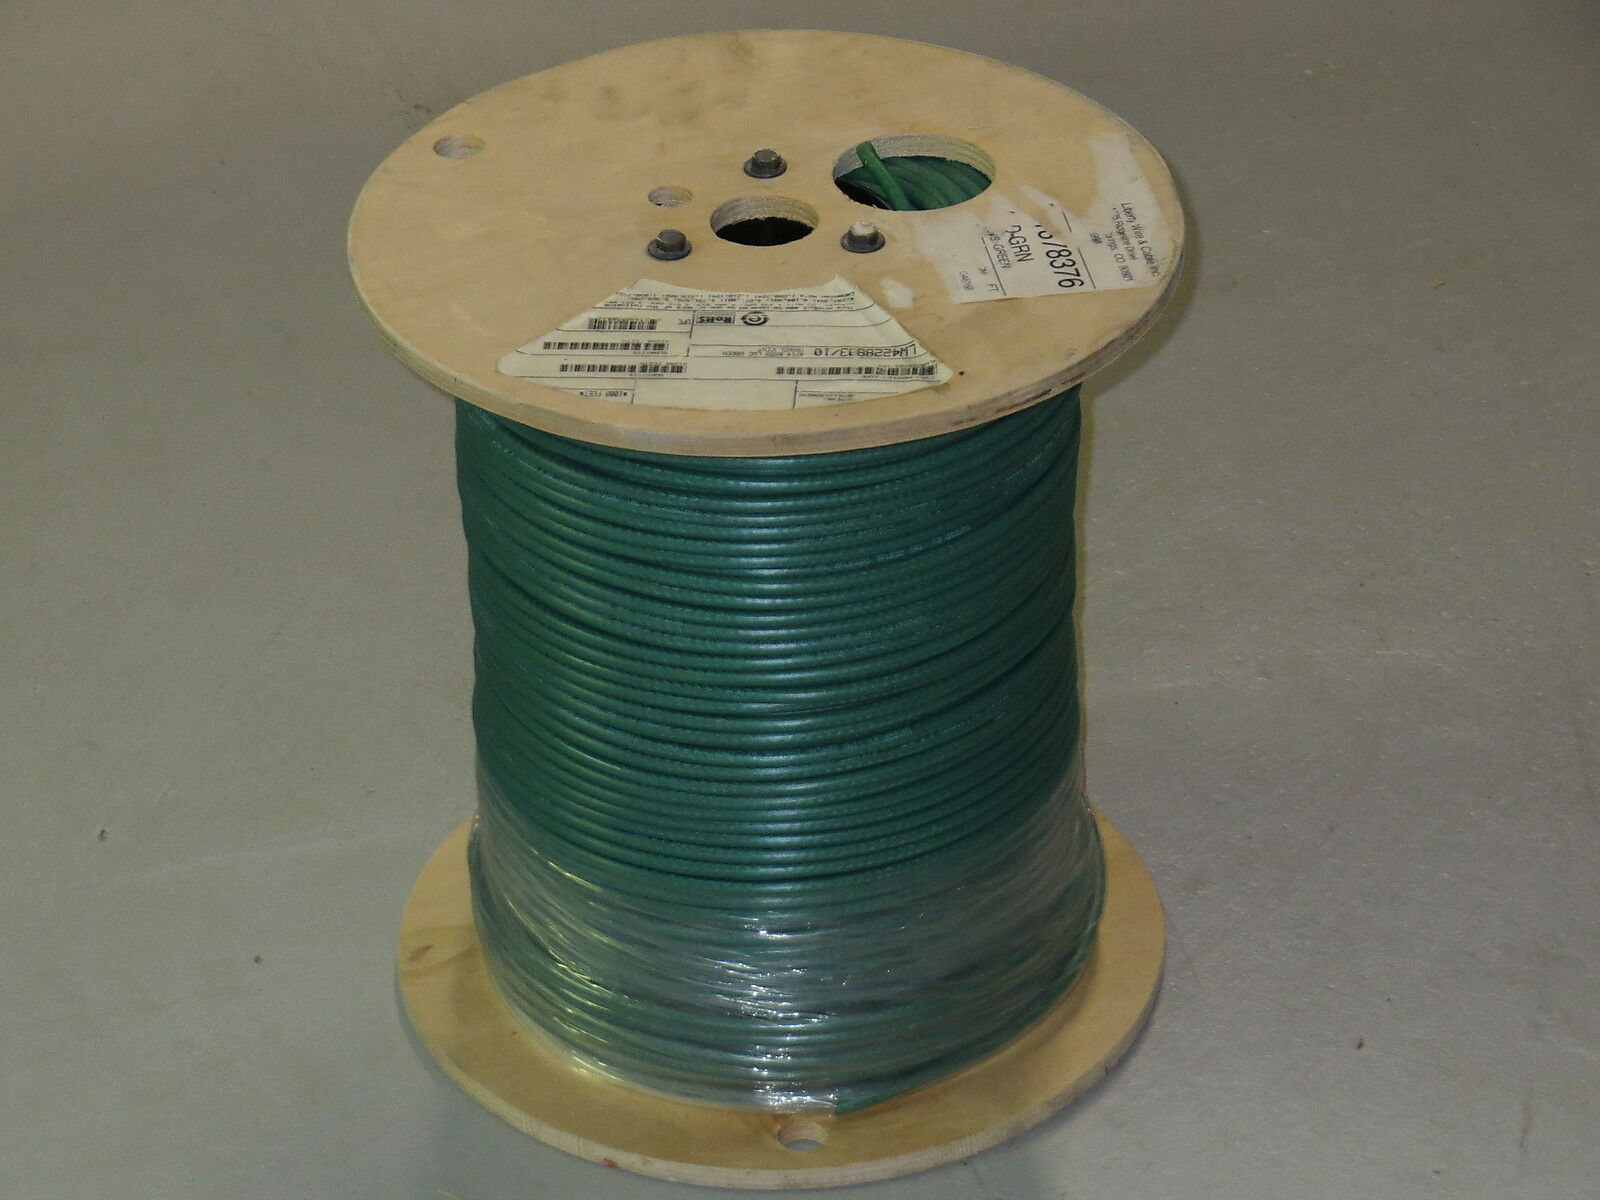 Liberty Wire & Cable Interflex-sd-grn Rg59 LWC Green 1000\' Reel 20 ...